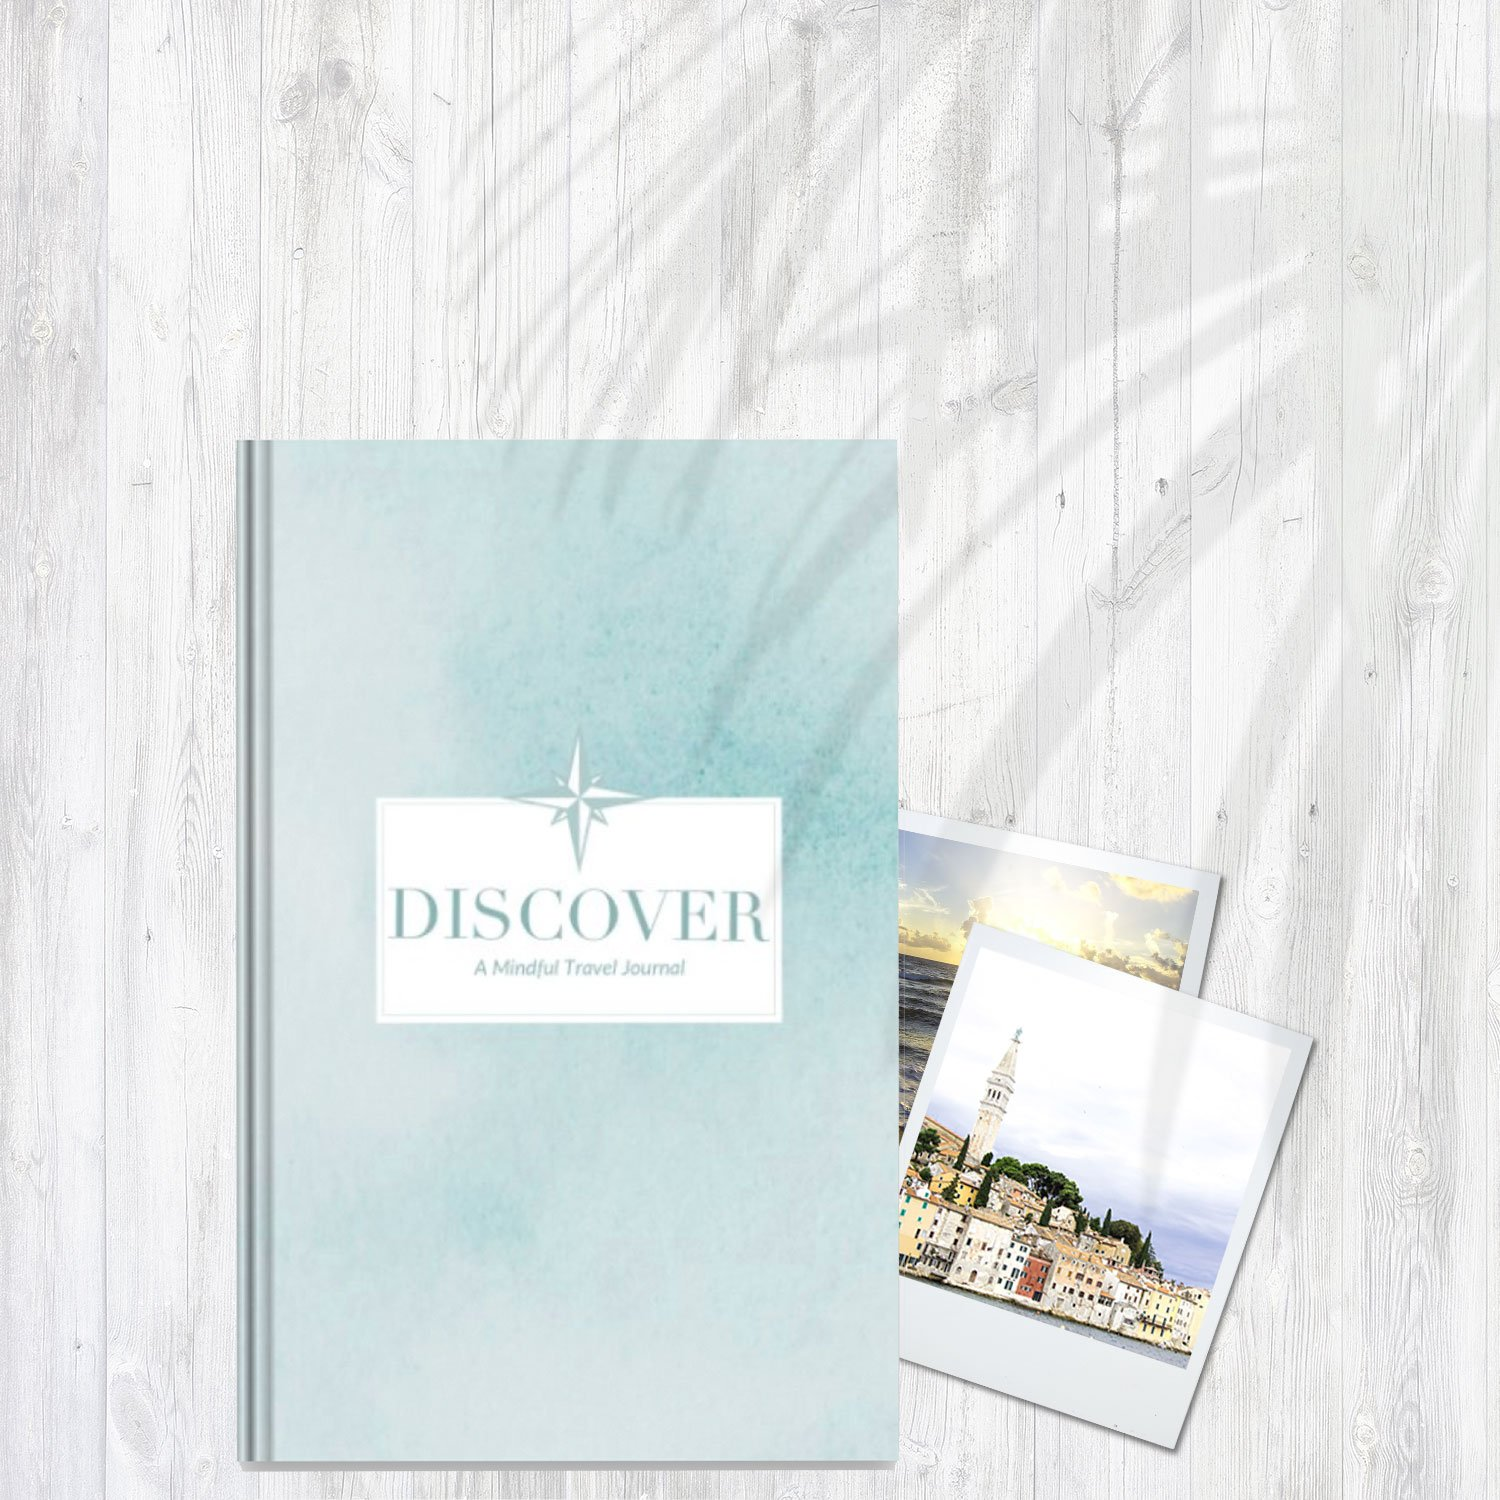 Discover Journal from The Reset Ritual